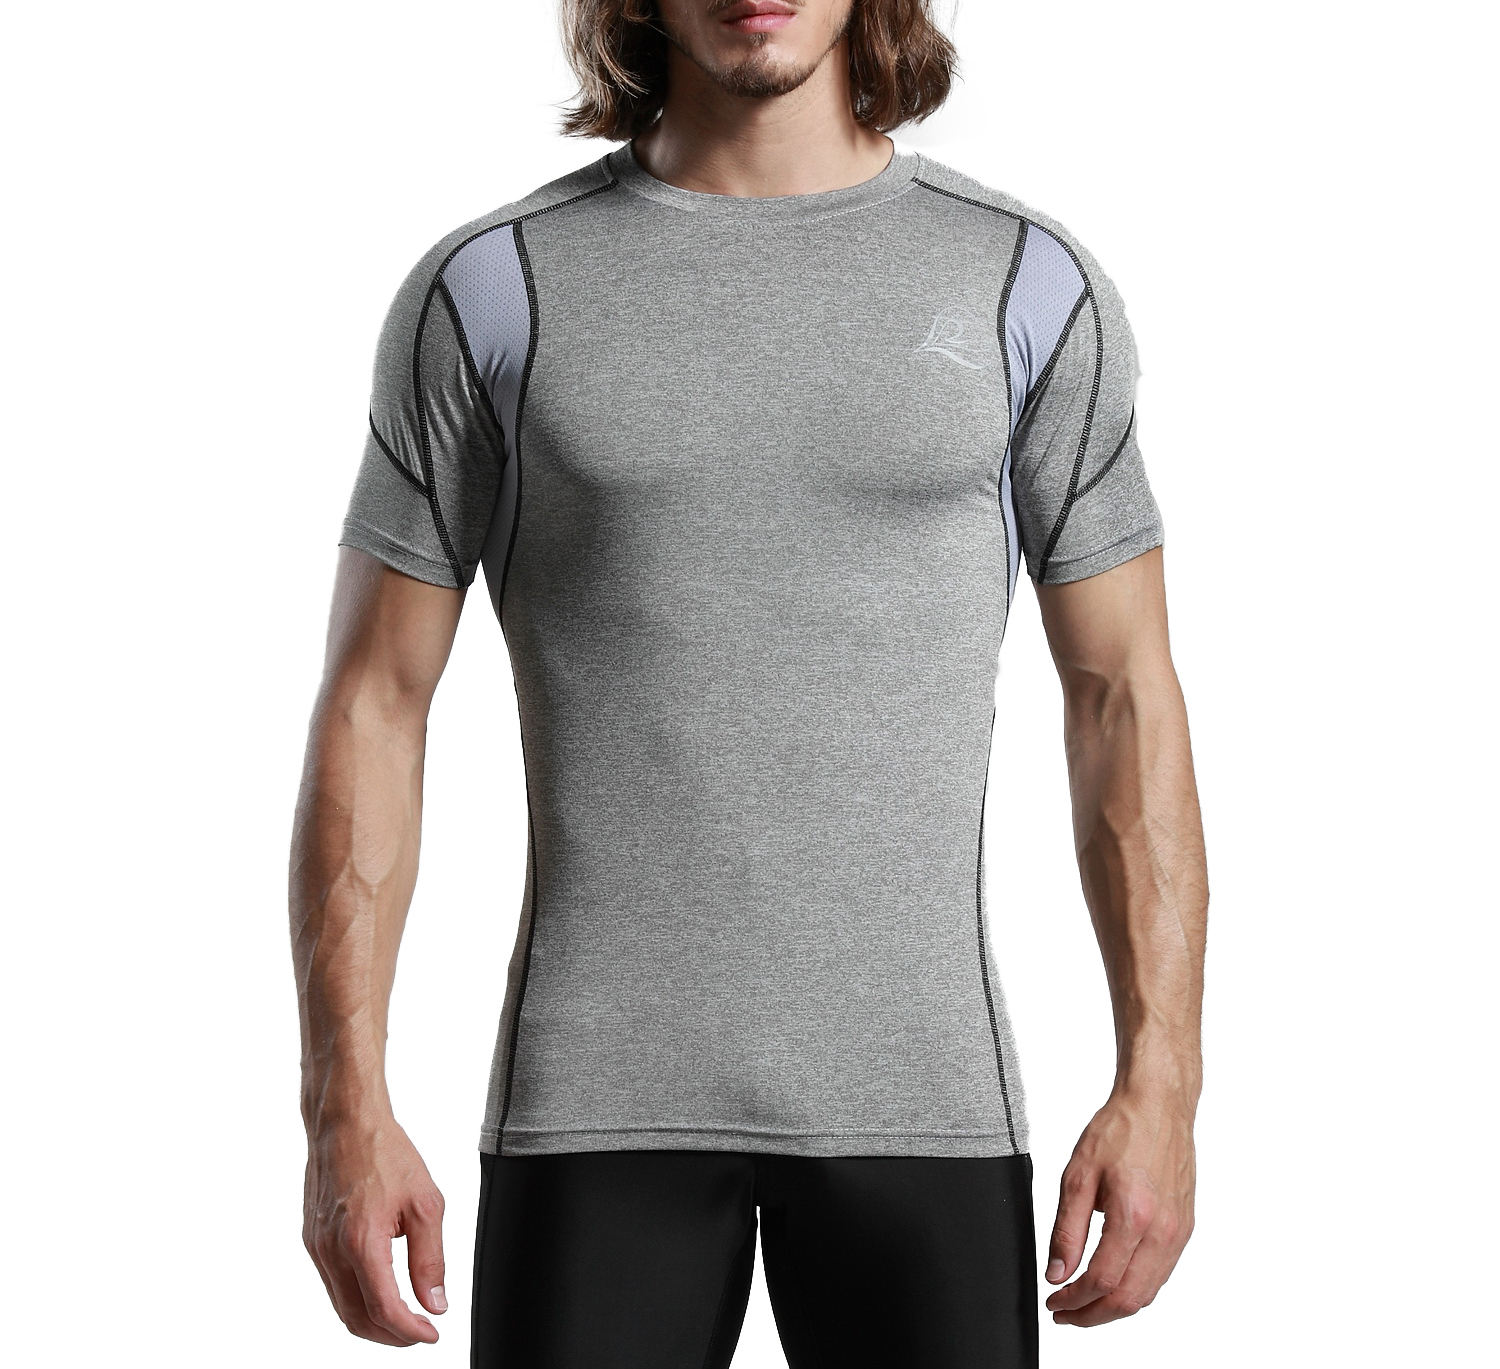 Wholesale Dry Fit Breathable Quick Dry Coolmax Men Compression Shirts